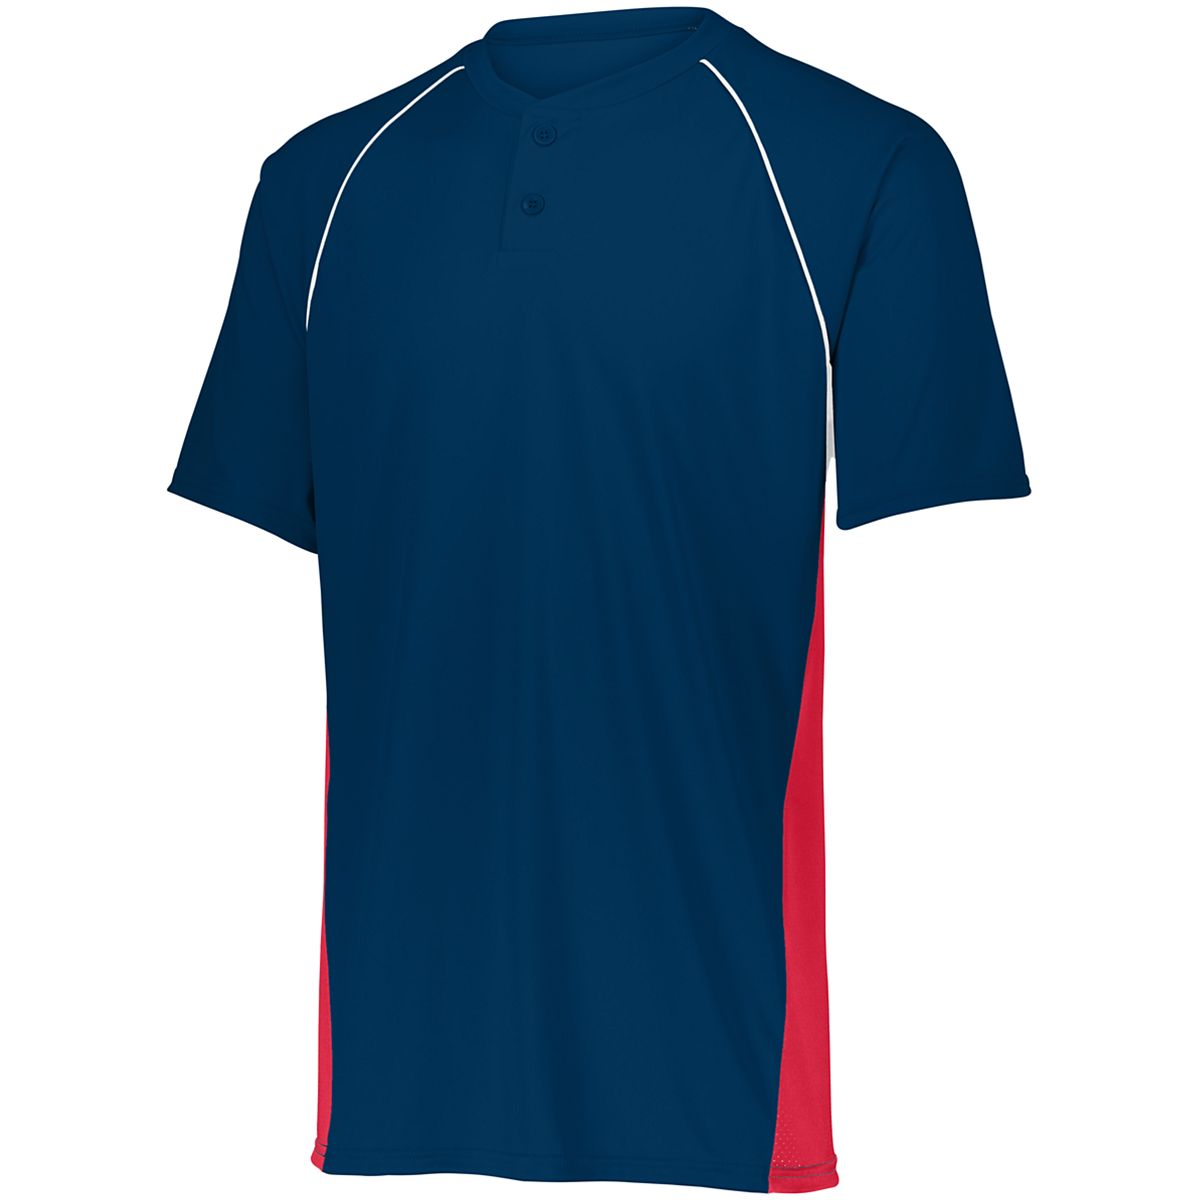 Augusta Limit Jersey Nv/Rd/Wh 3Xl - image 1 of 1